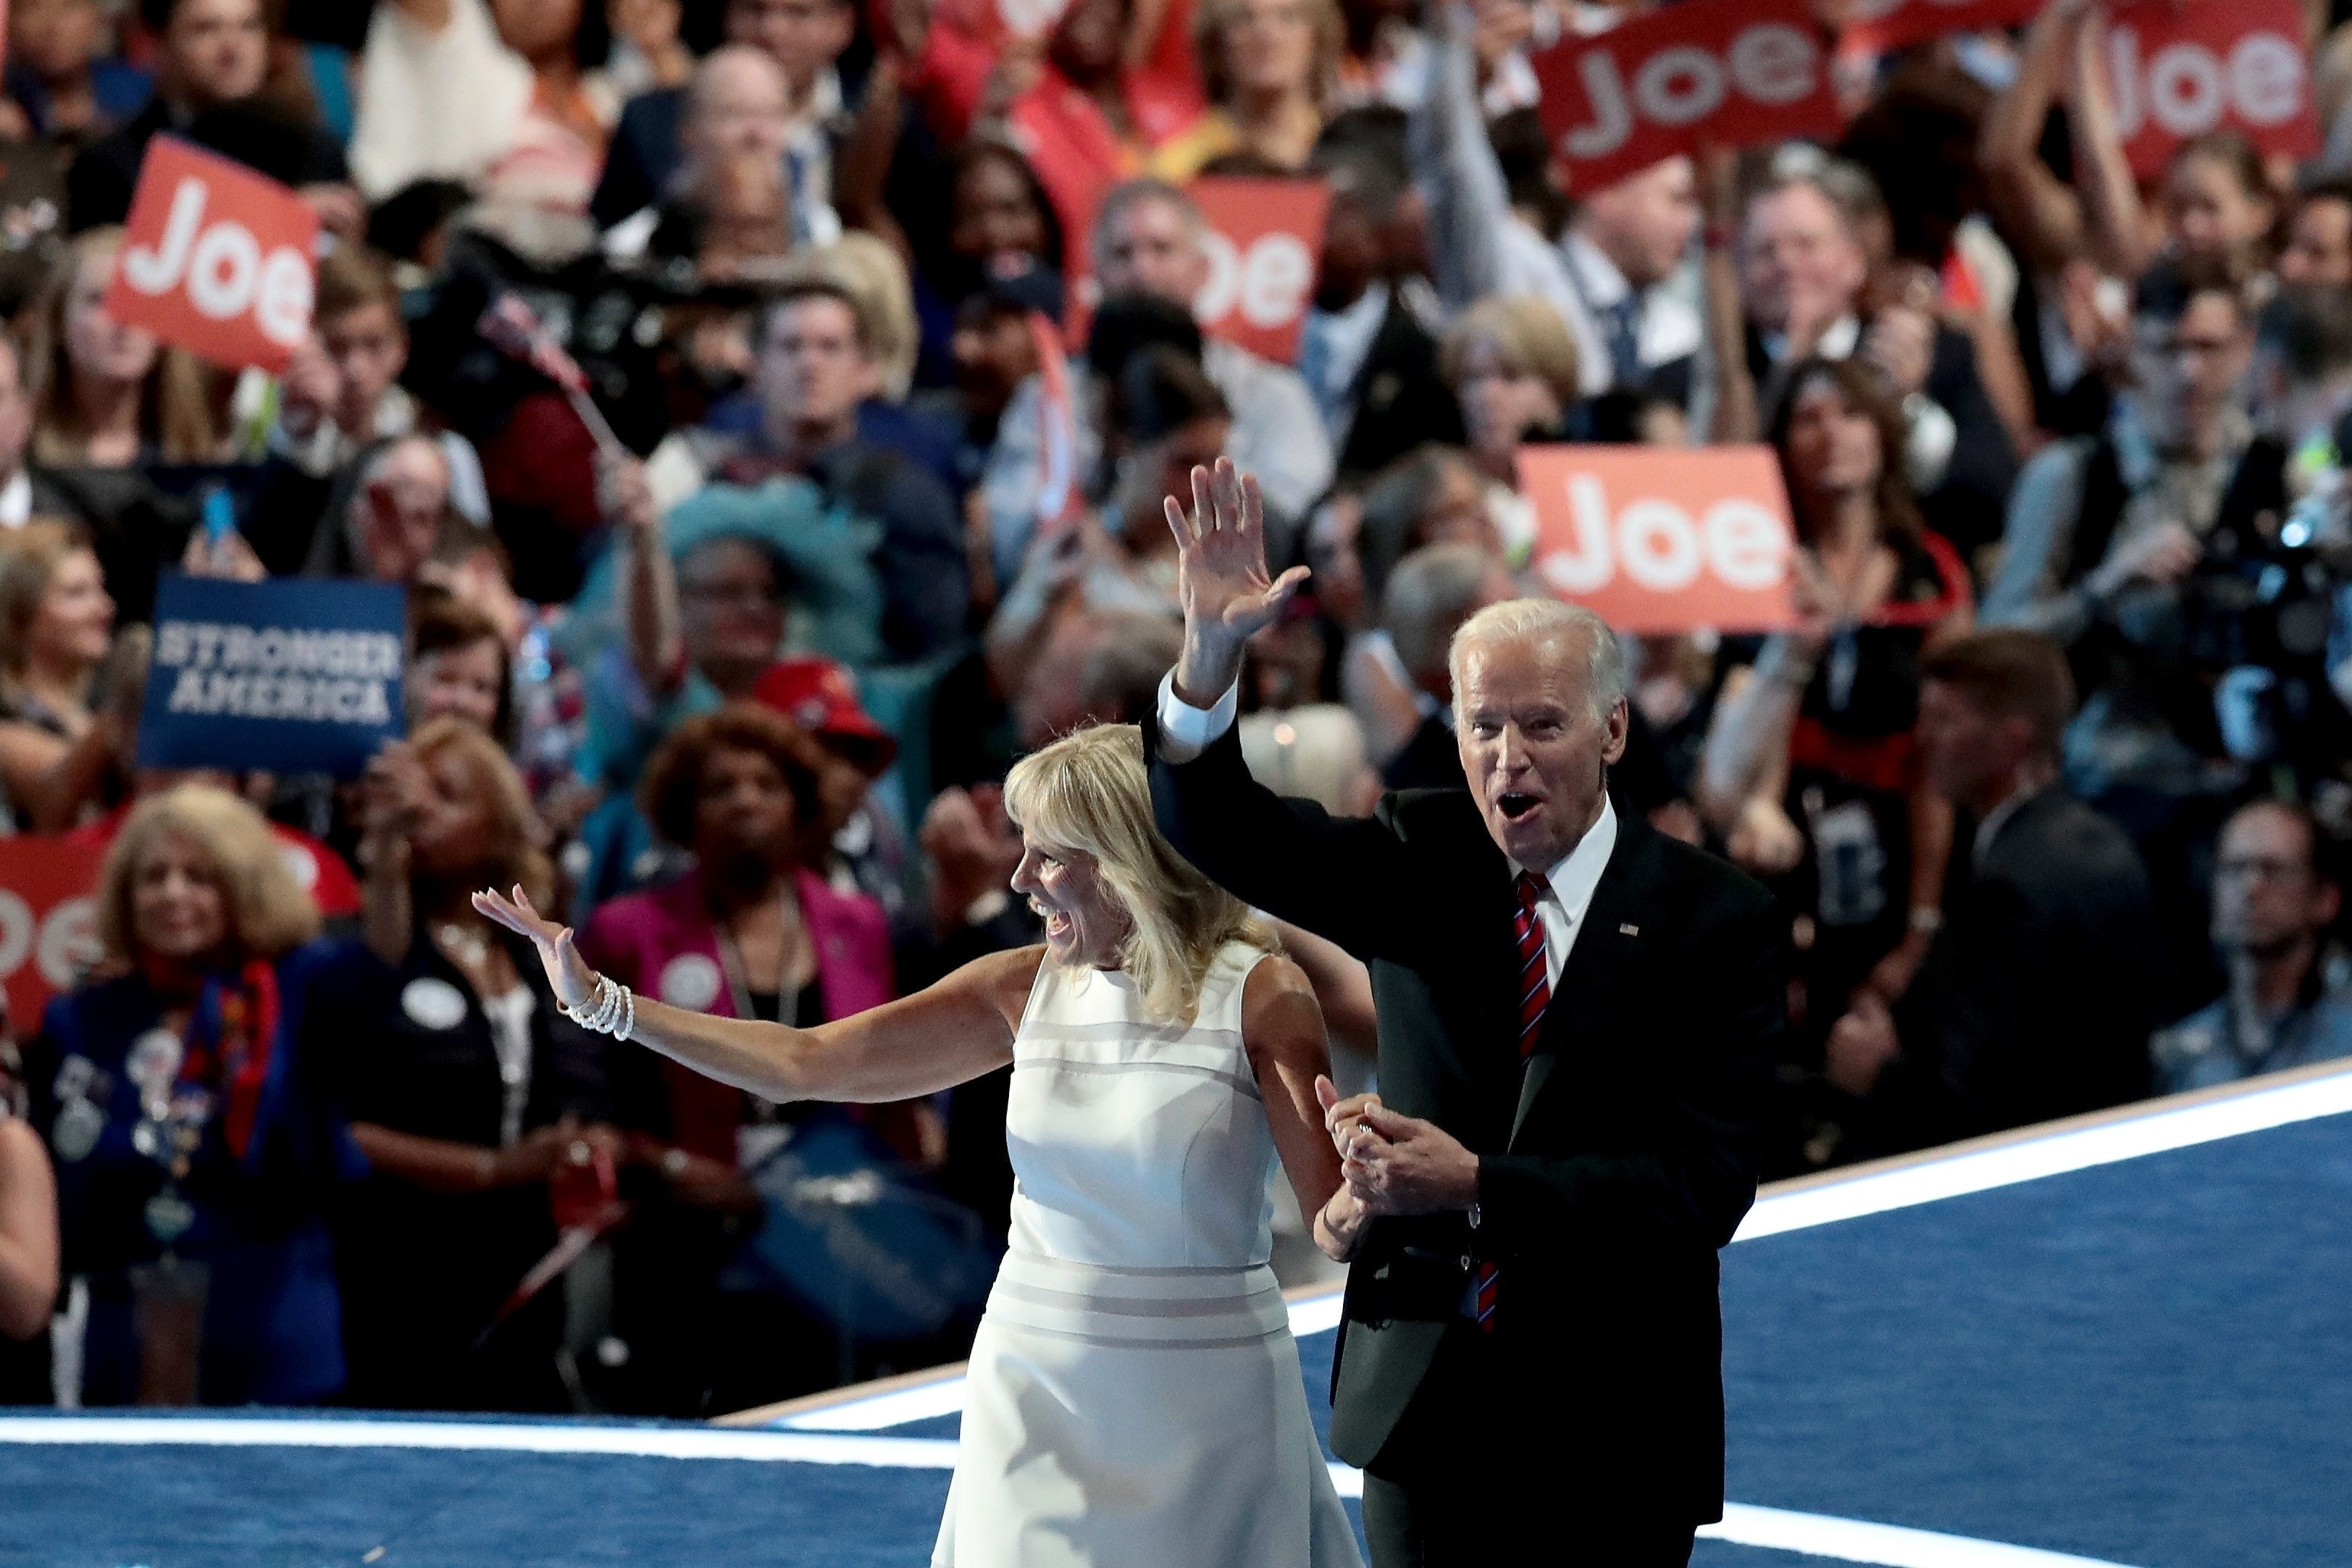 Vice President Biden and his wife, Jill, wave to the crowd on the third day of the Democratic National Convention at the Wells Fargo Center in Philadelphia. Husband and wife both spoke about their confidence in presidential nominee Hillary Clinton.